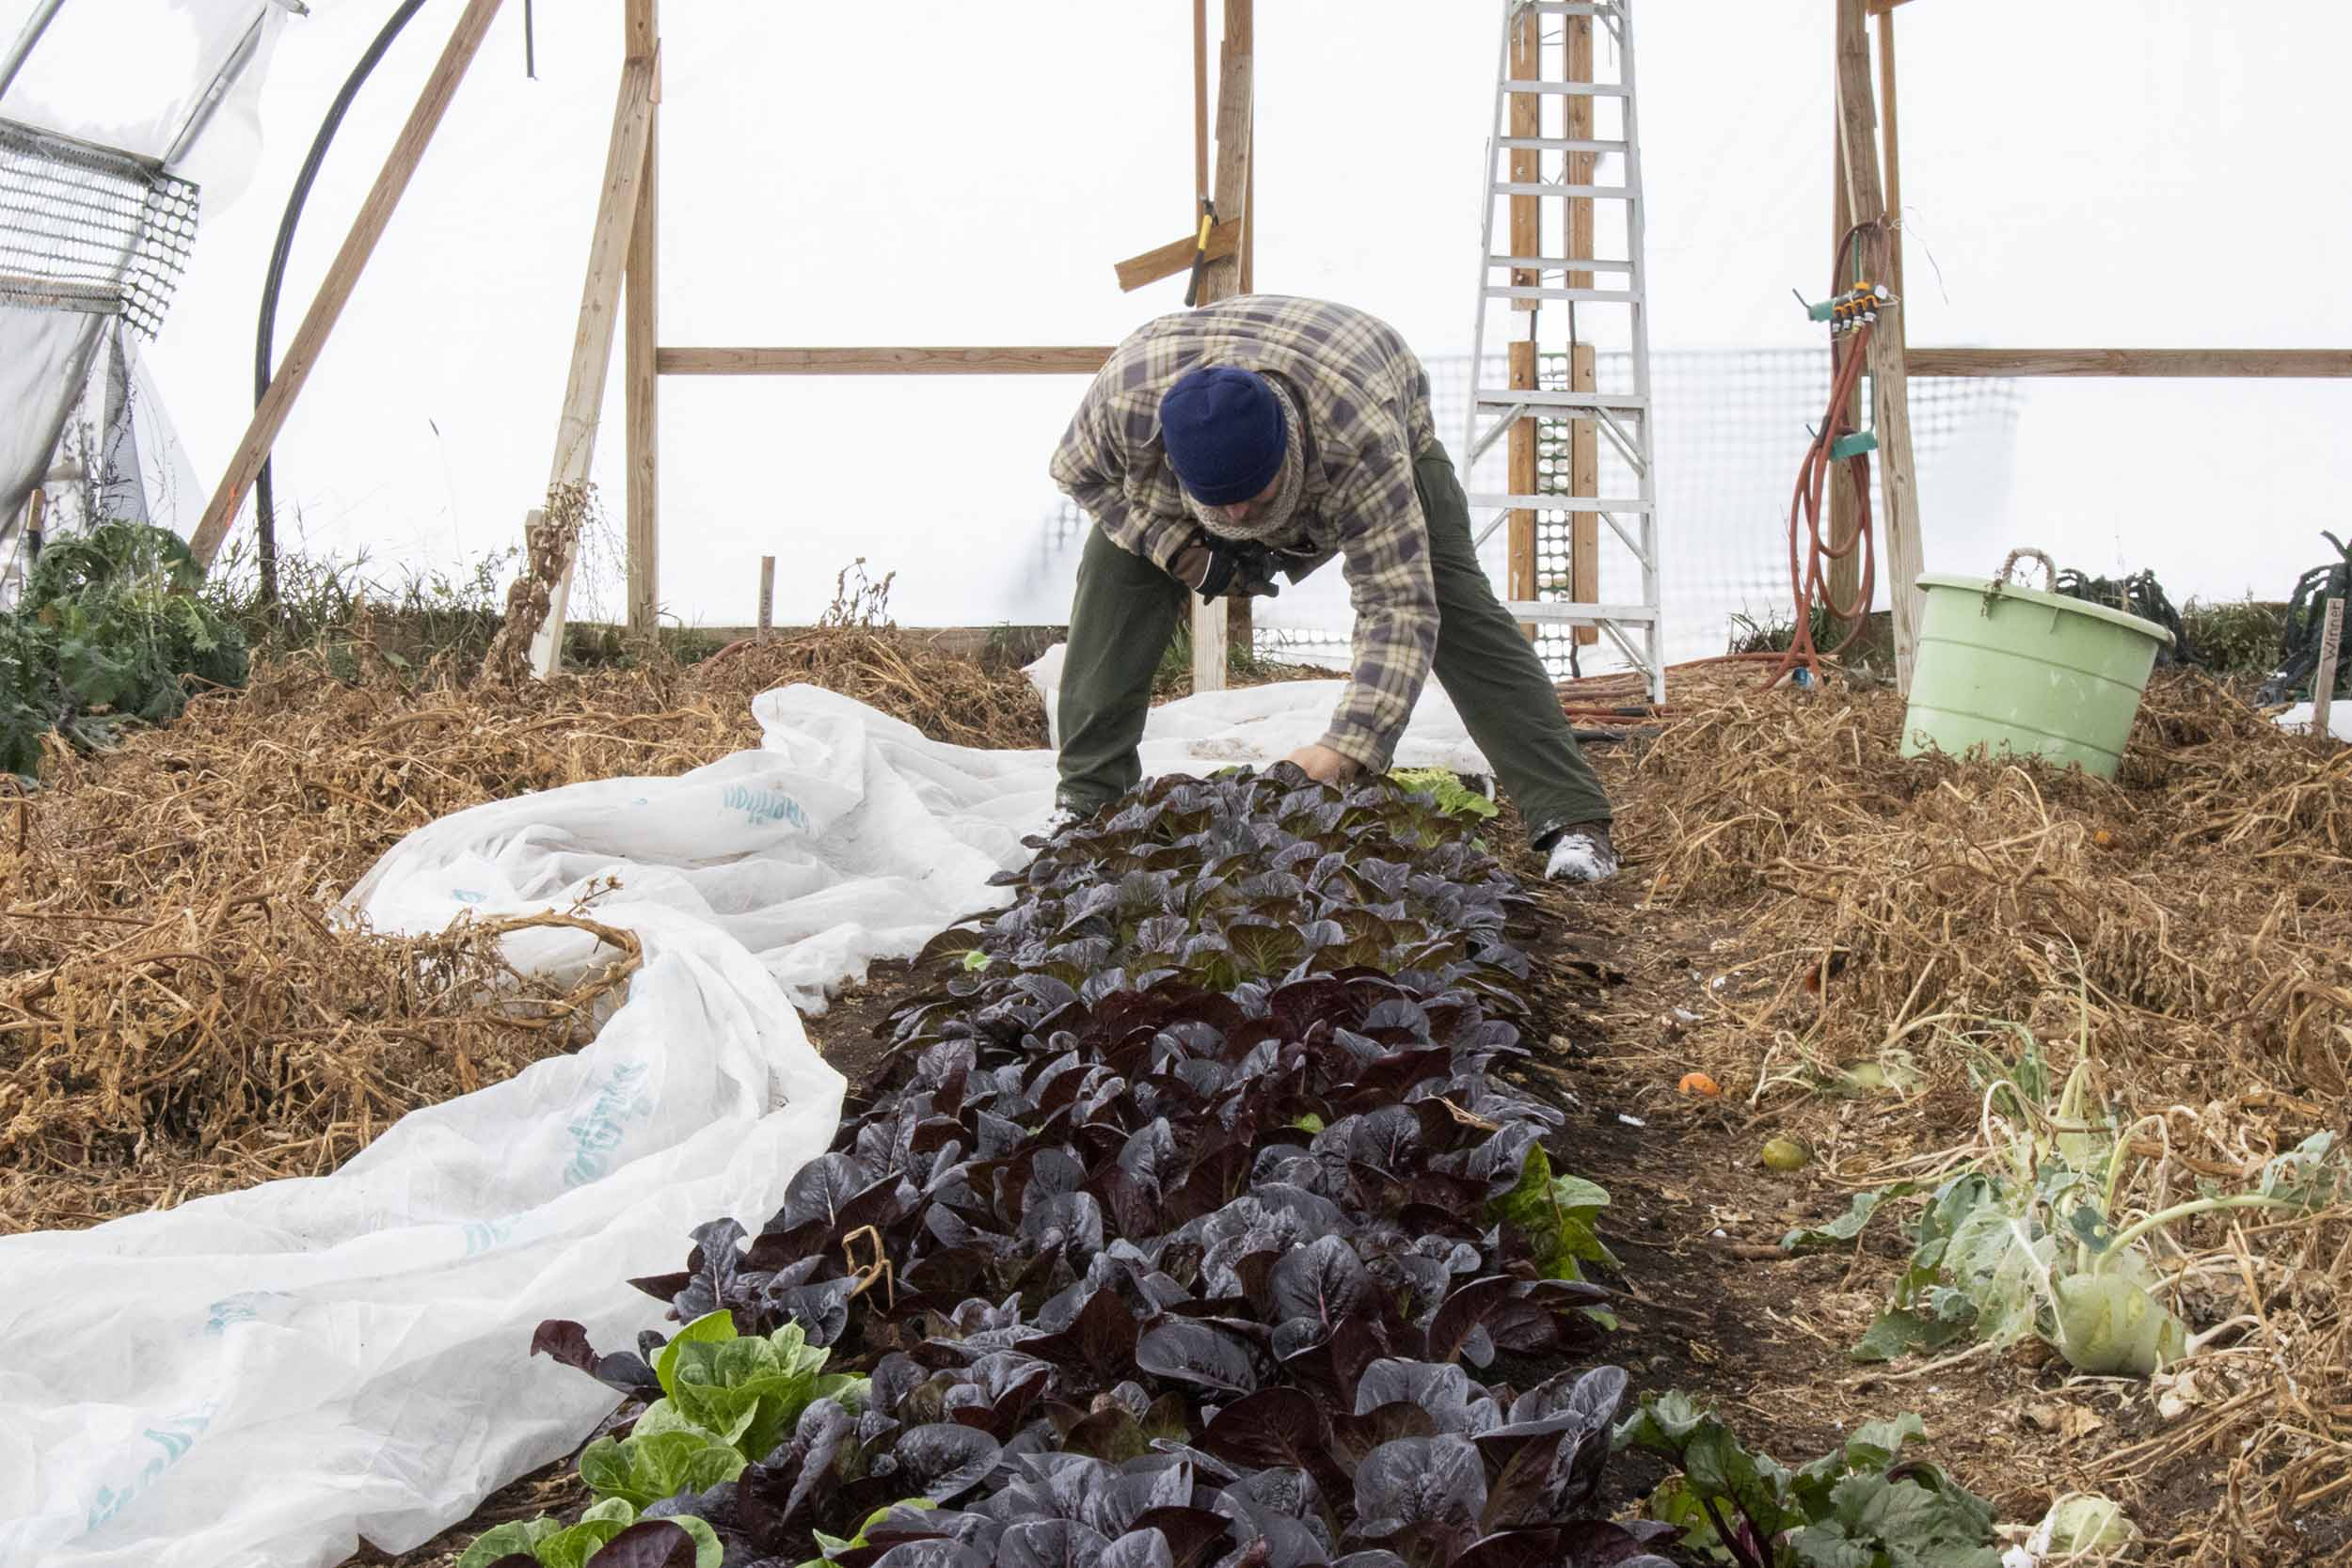 Matt Geraets checks lettuce in the greenhouse.